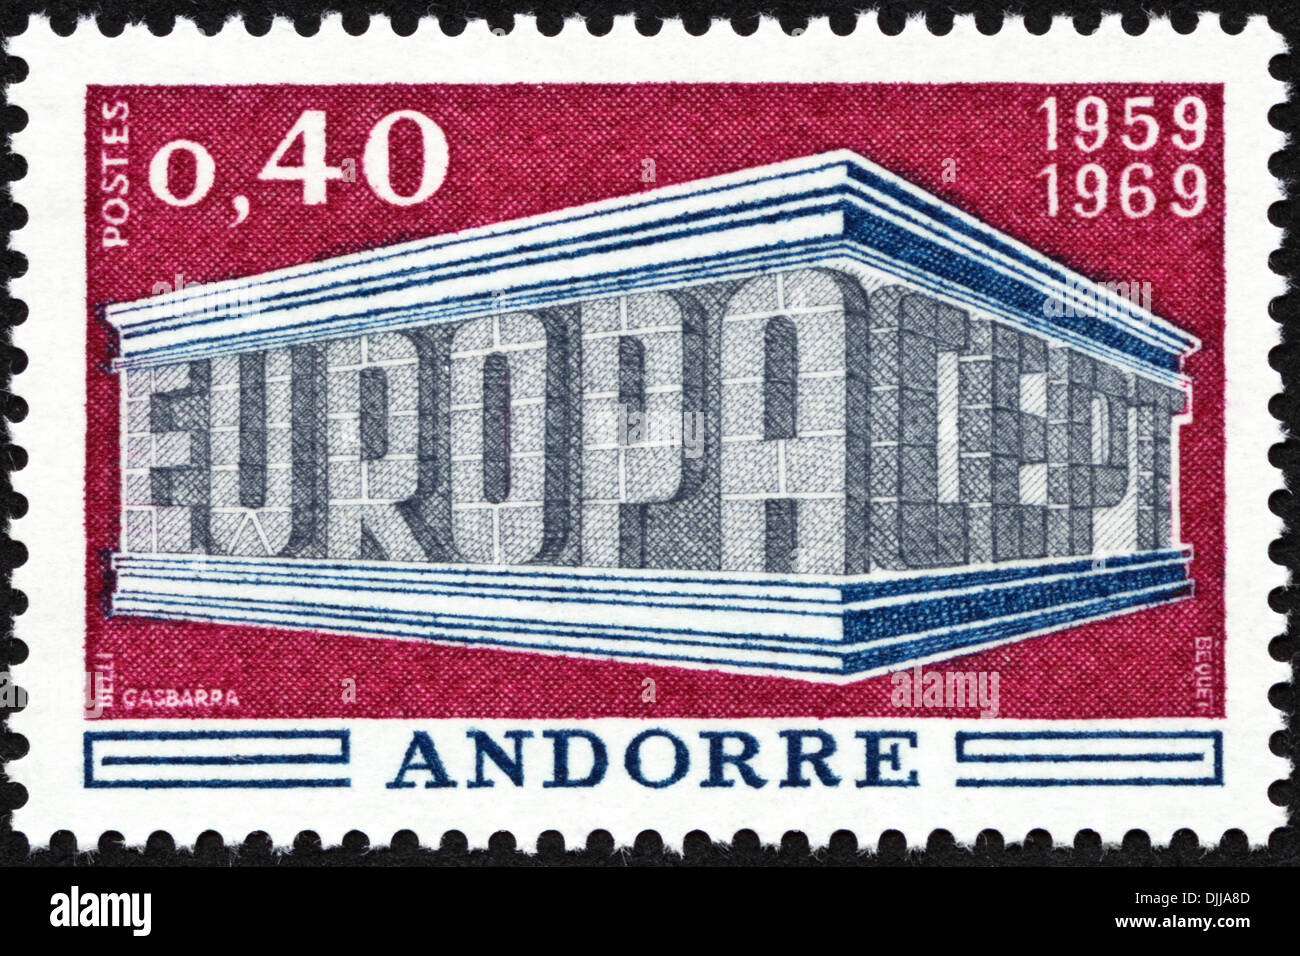 postage stamp Andorre 0,40 featuring Europa CEPT 1959 - 1969 issued 1969 - Stock Image